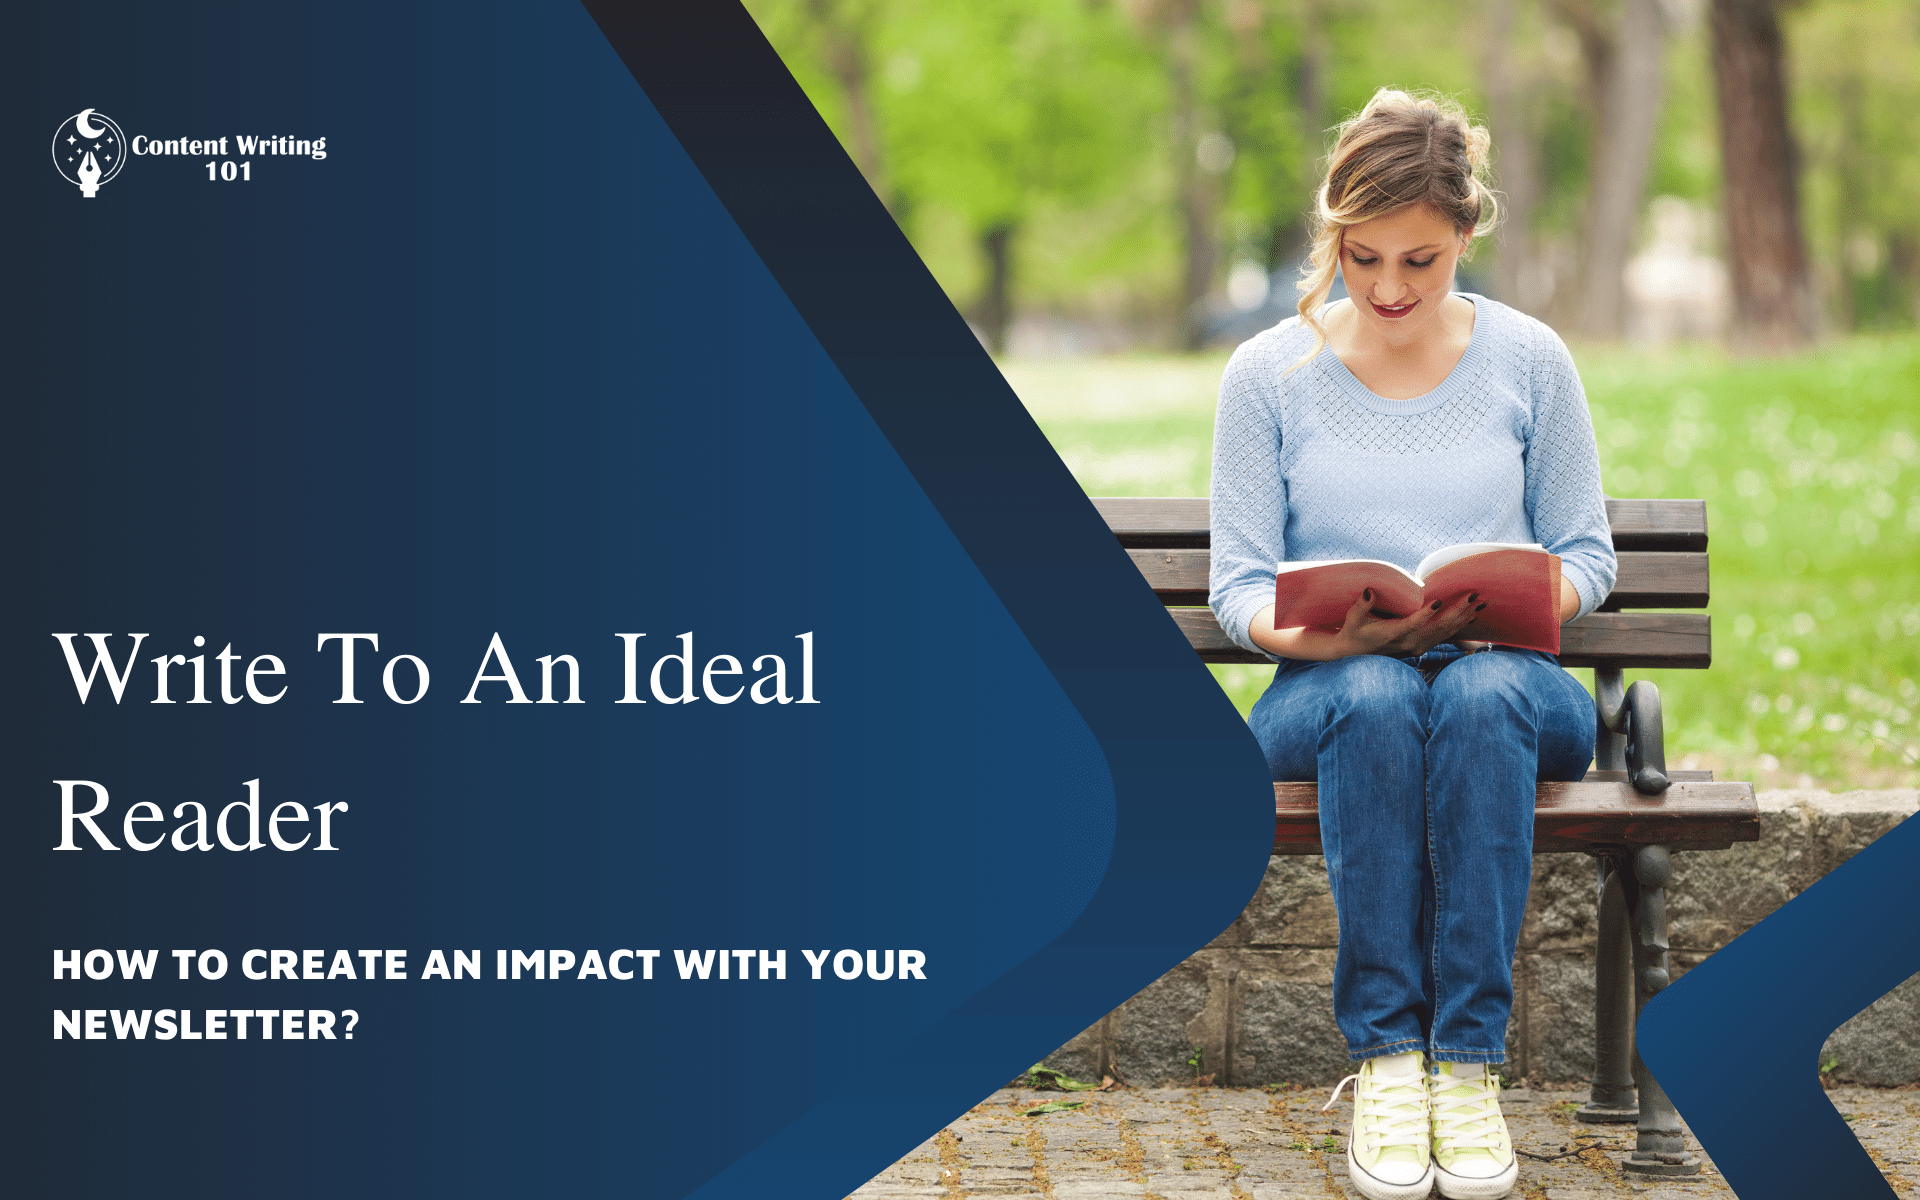 Write To An Ideal Reader.